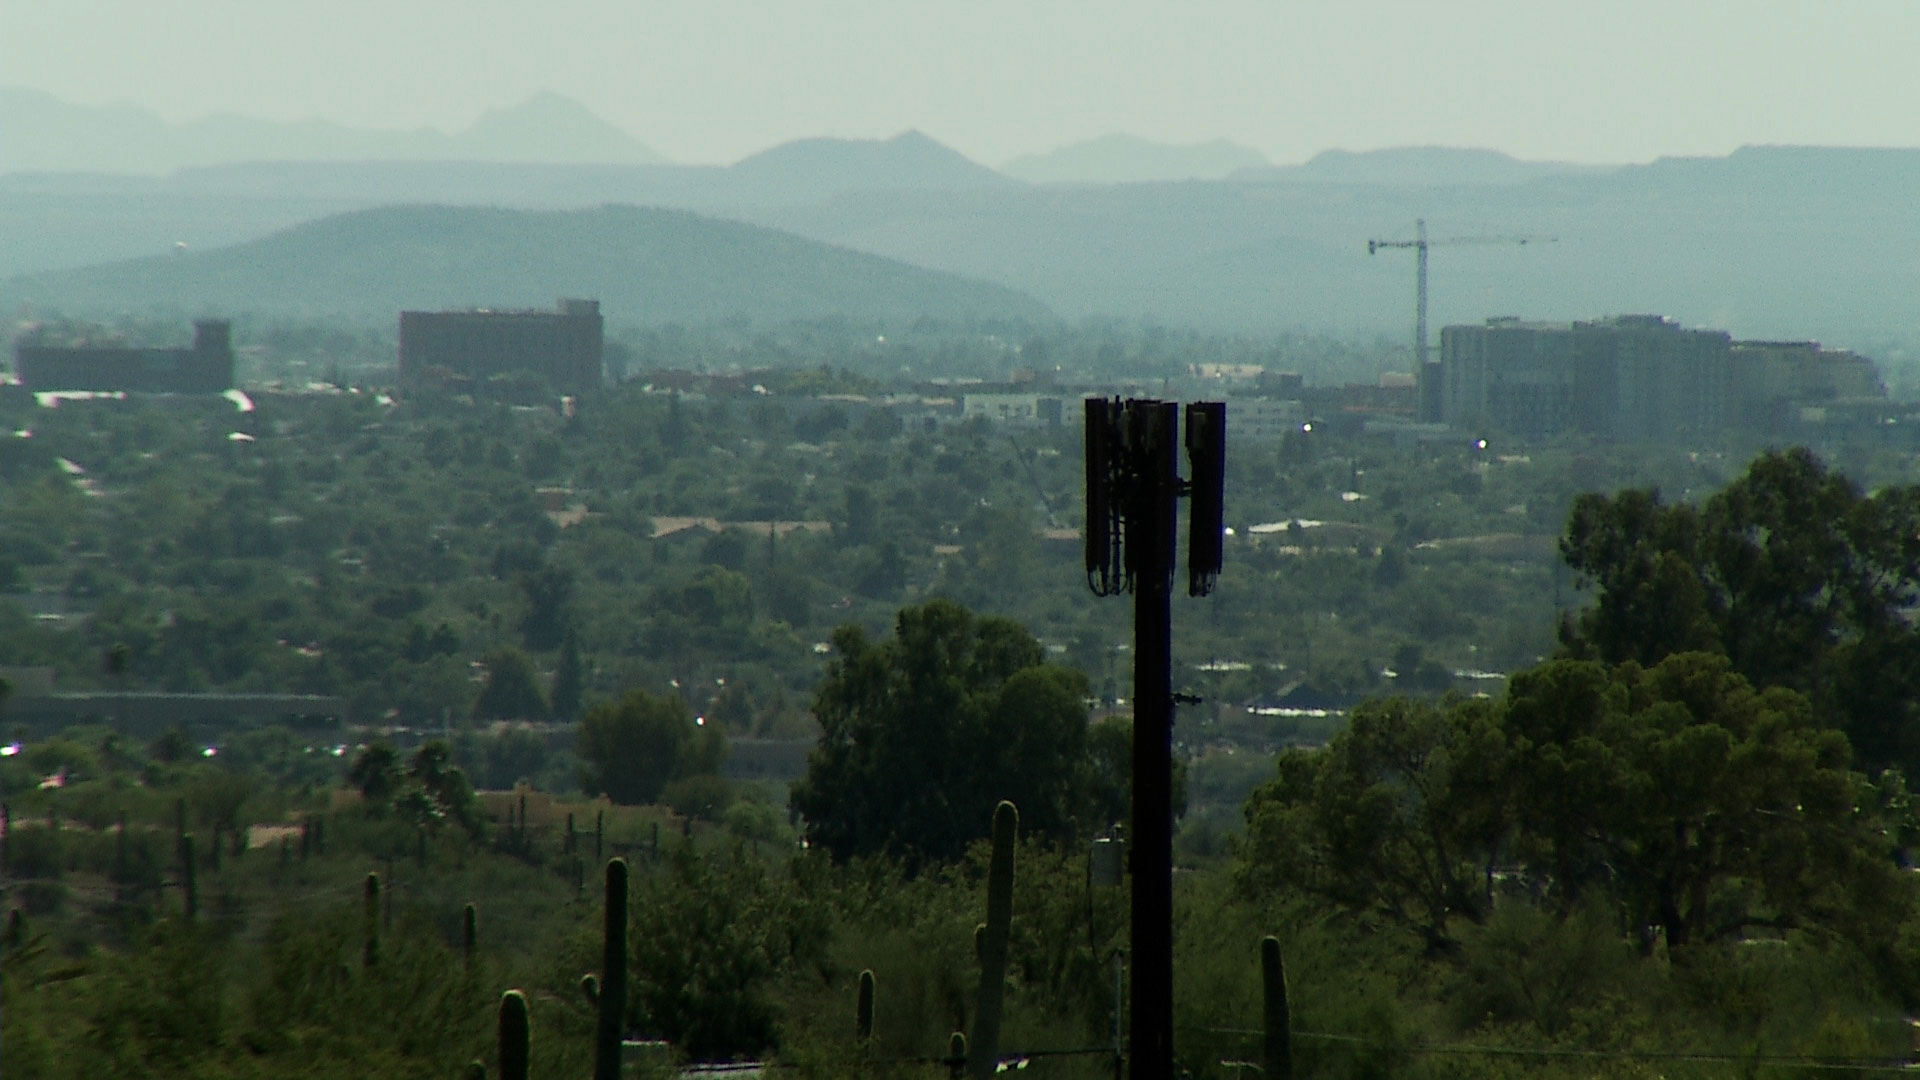 A cell tower is visible in the foreground against the backdrop of the city of Tucson.